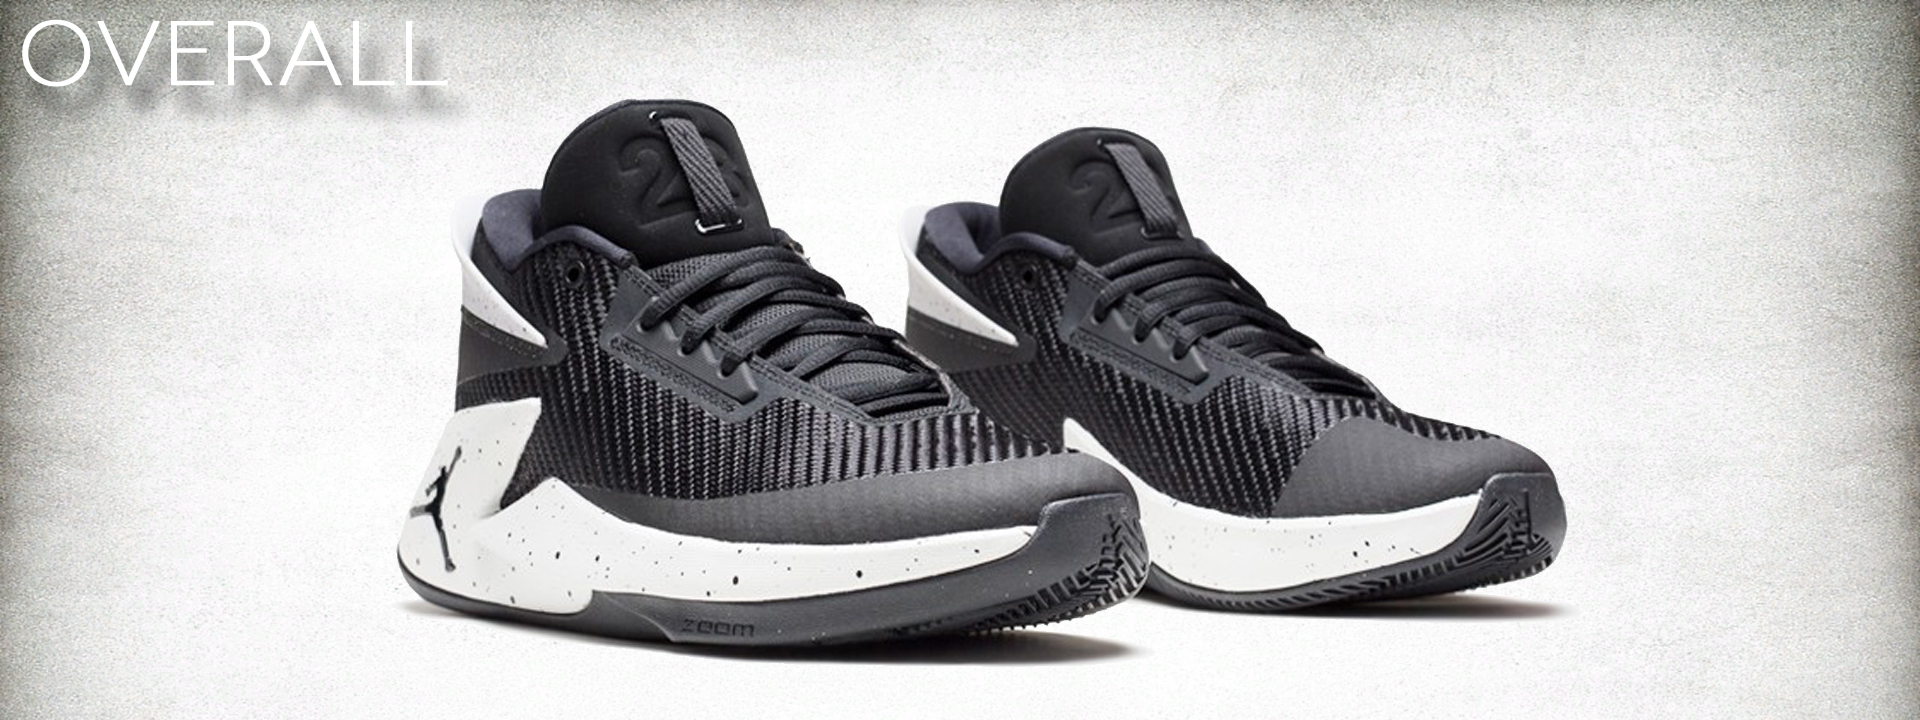 Jordan Fly Lockdown Performance Review overall